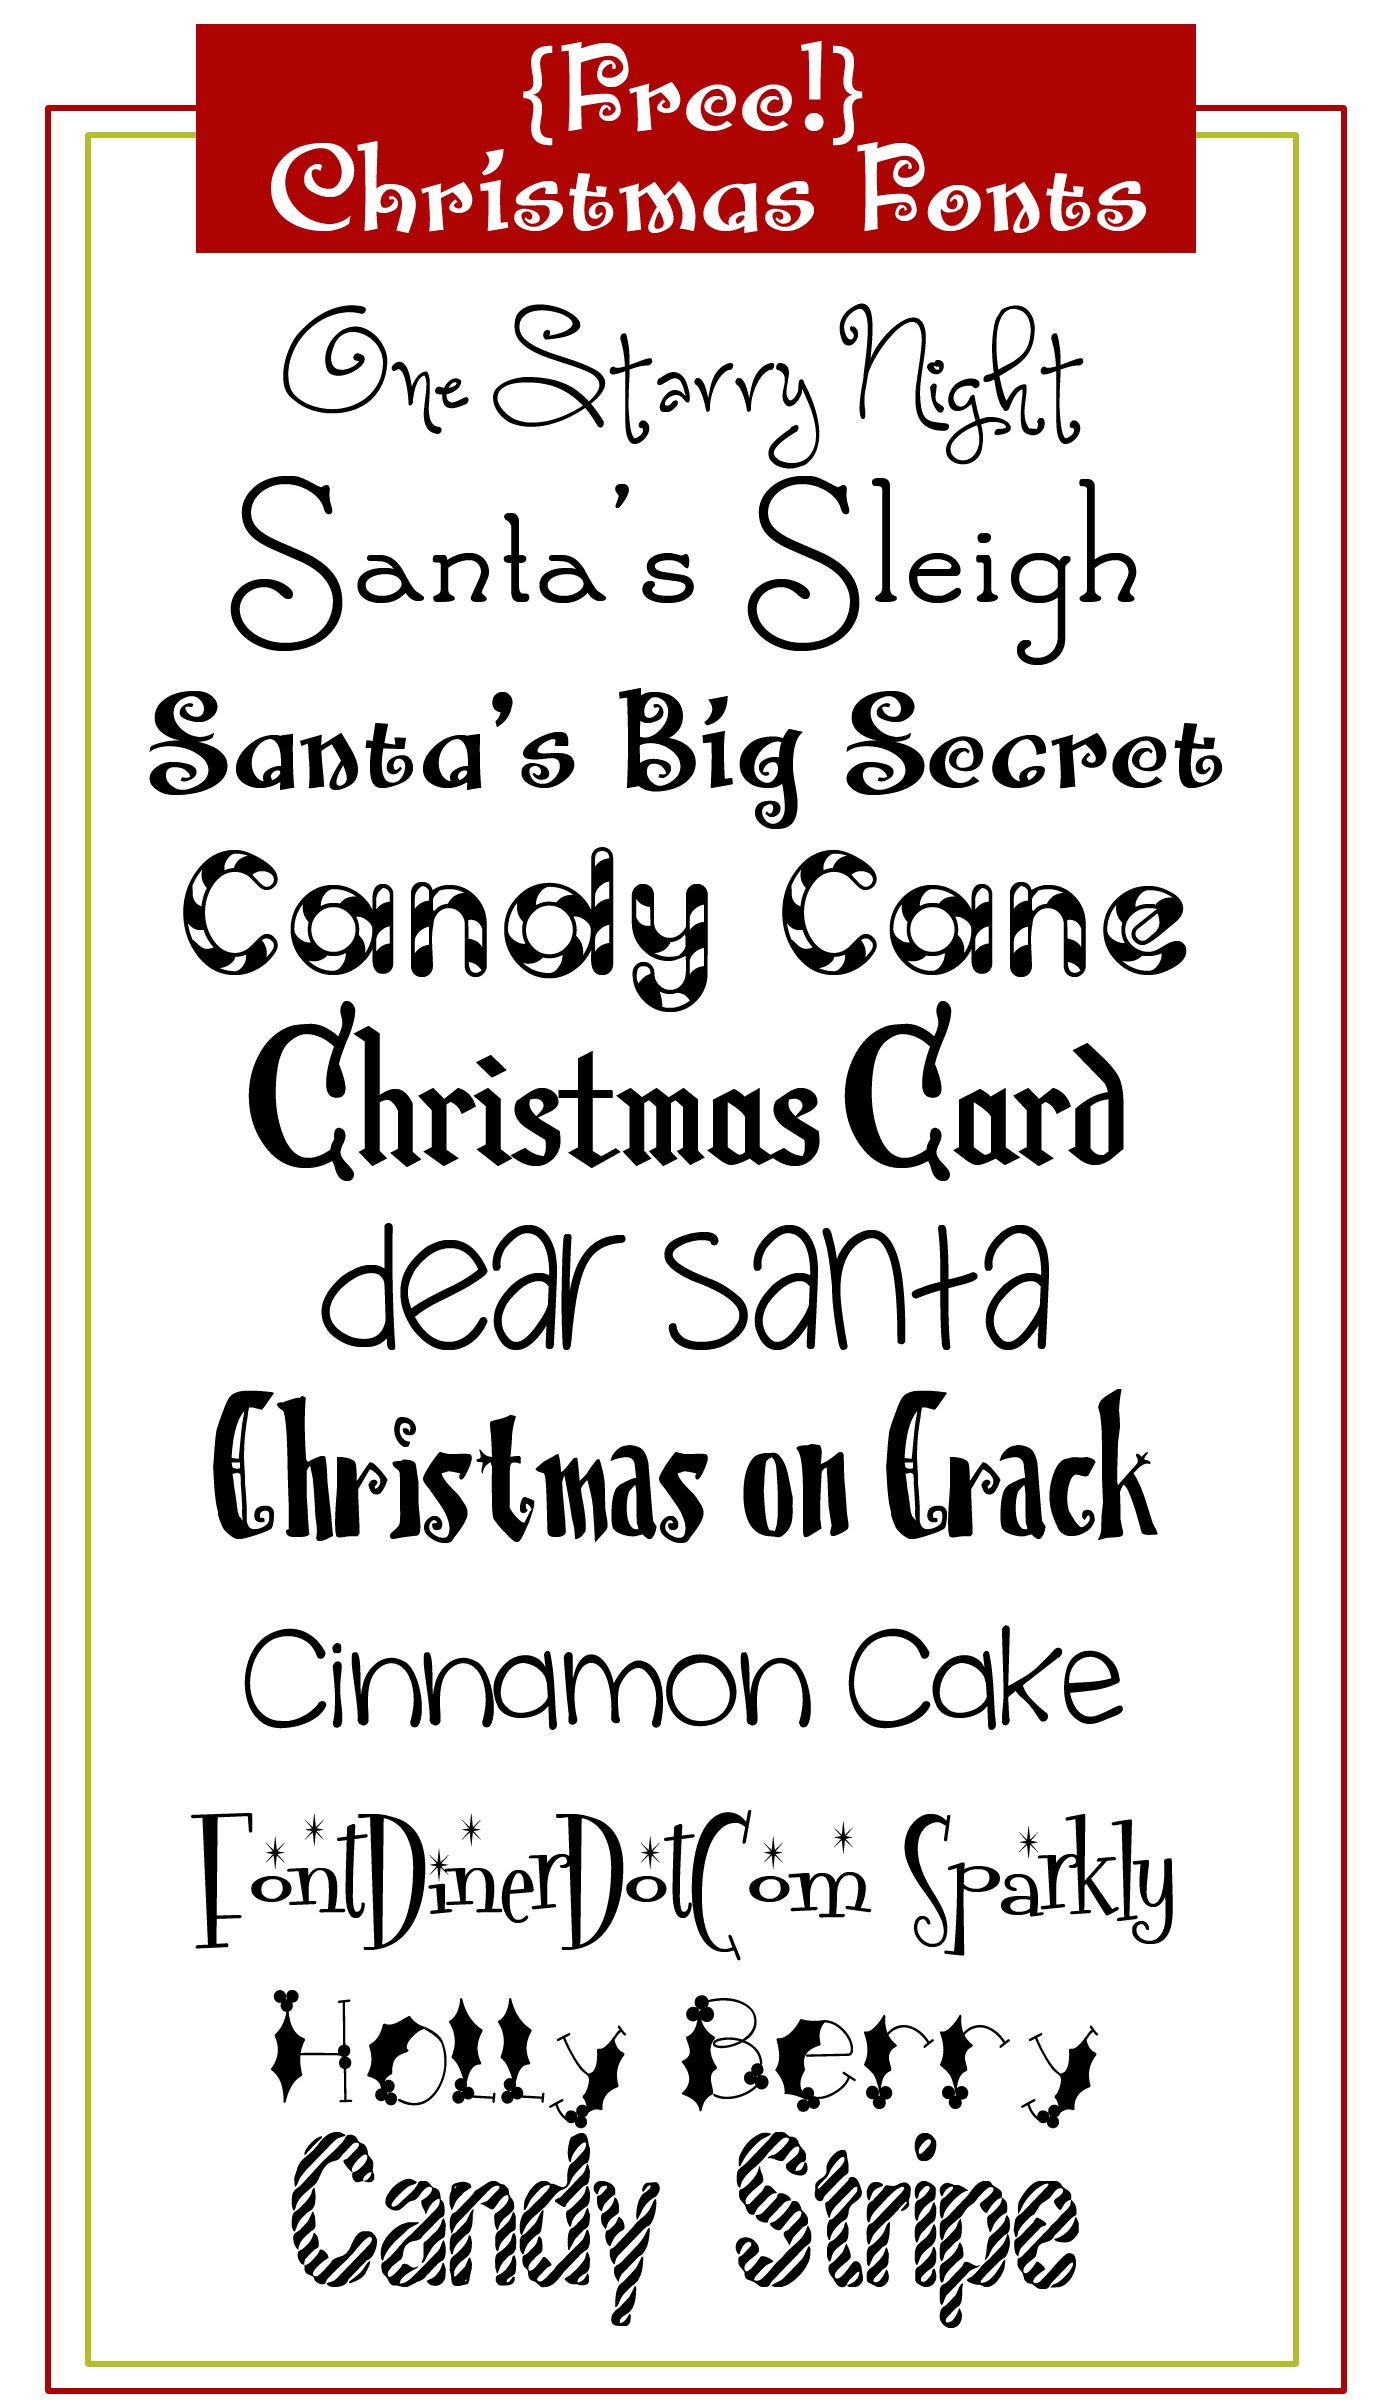 Free Christmas Fonts Christmas fonts and Fonts